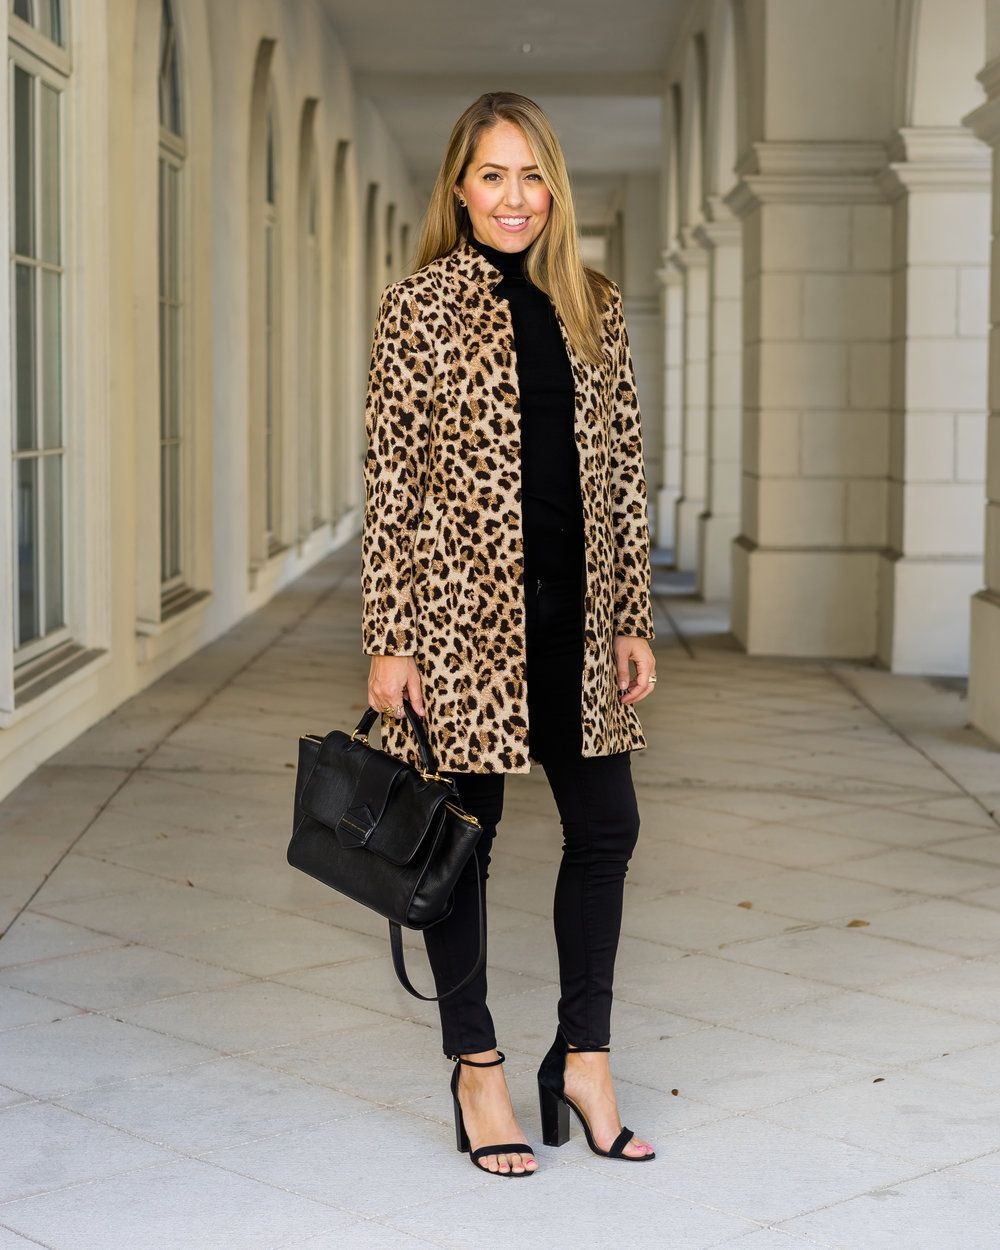 Today's Everyday Fashion: The Leopard Coat